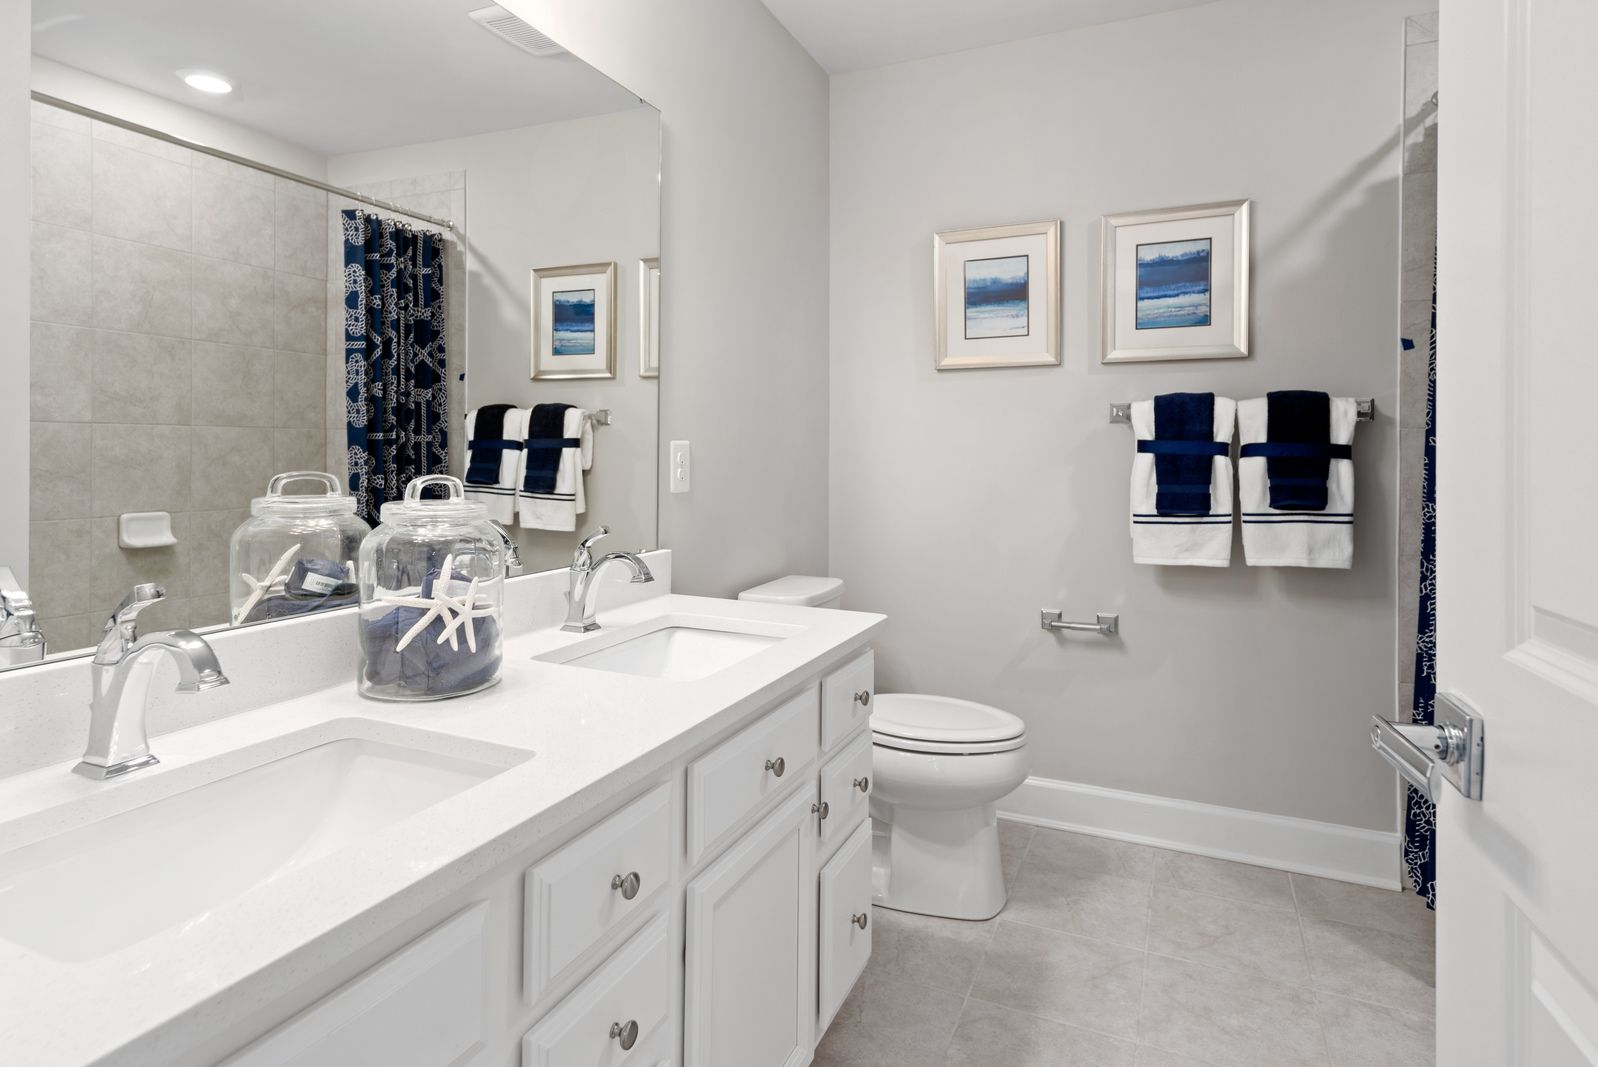 Bathroom featured in the Stapleton By NVHomes in Sussex, DE